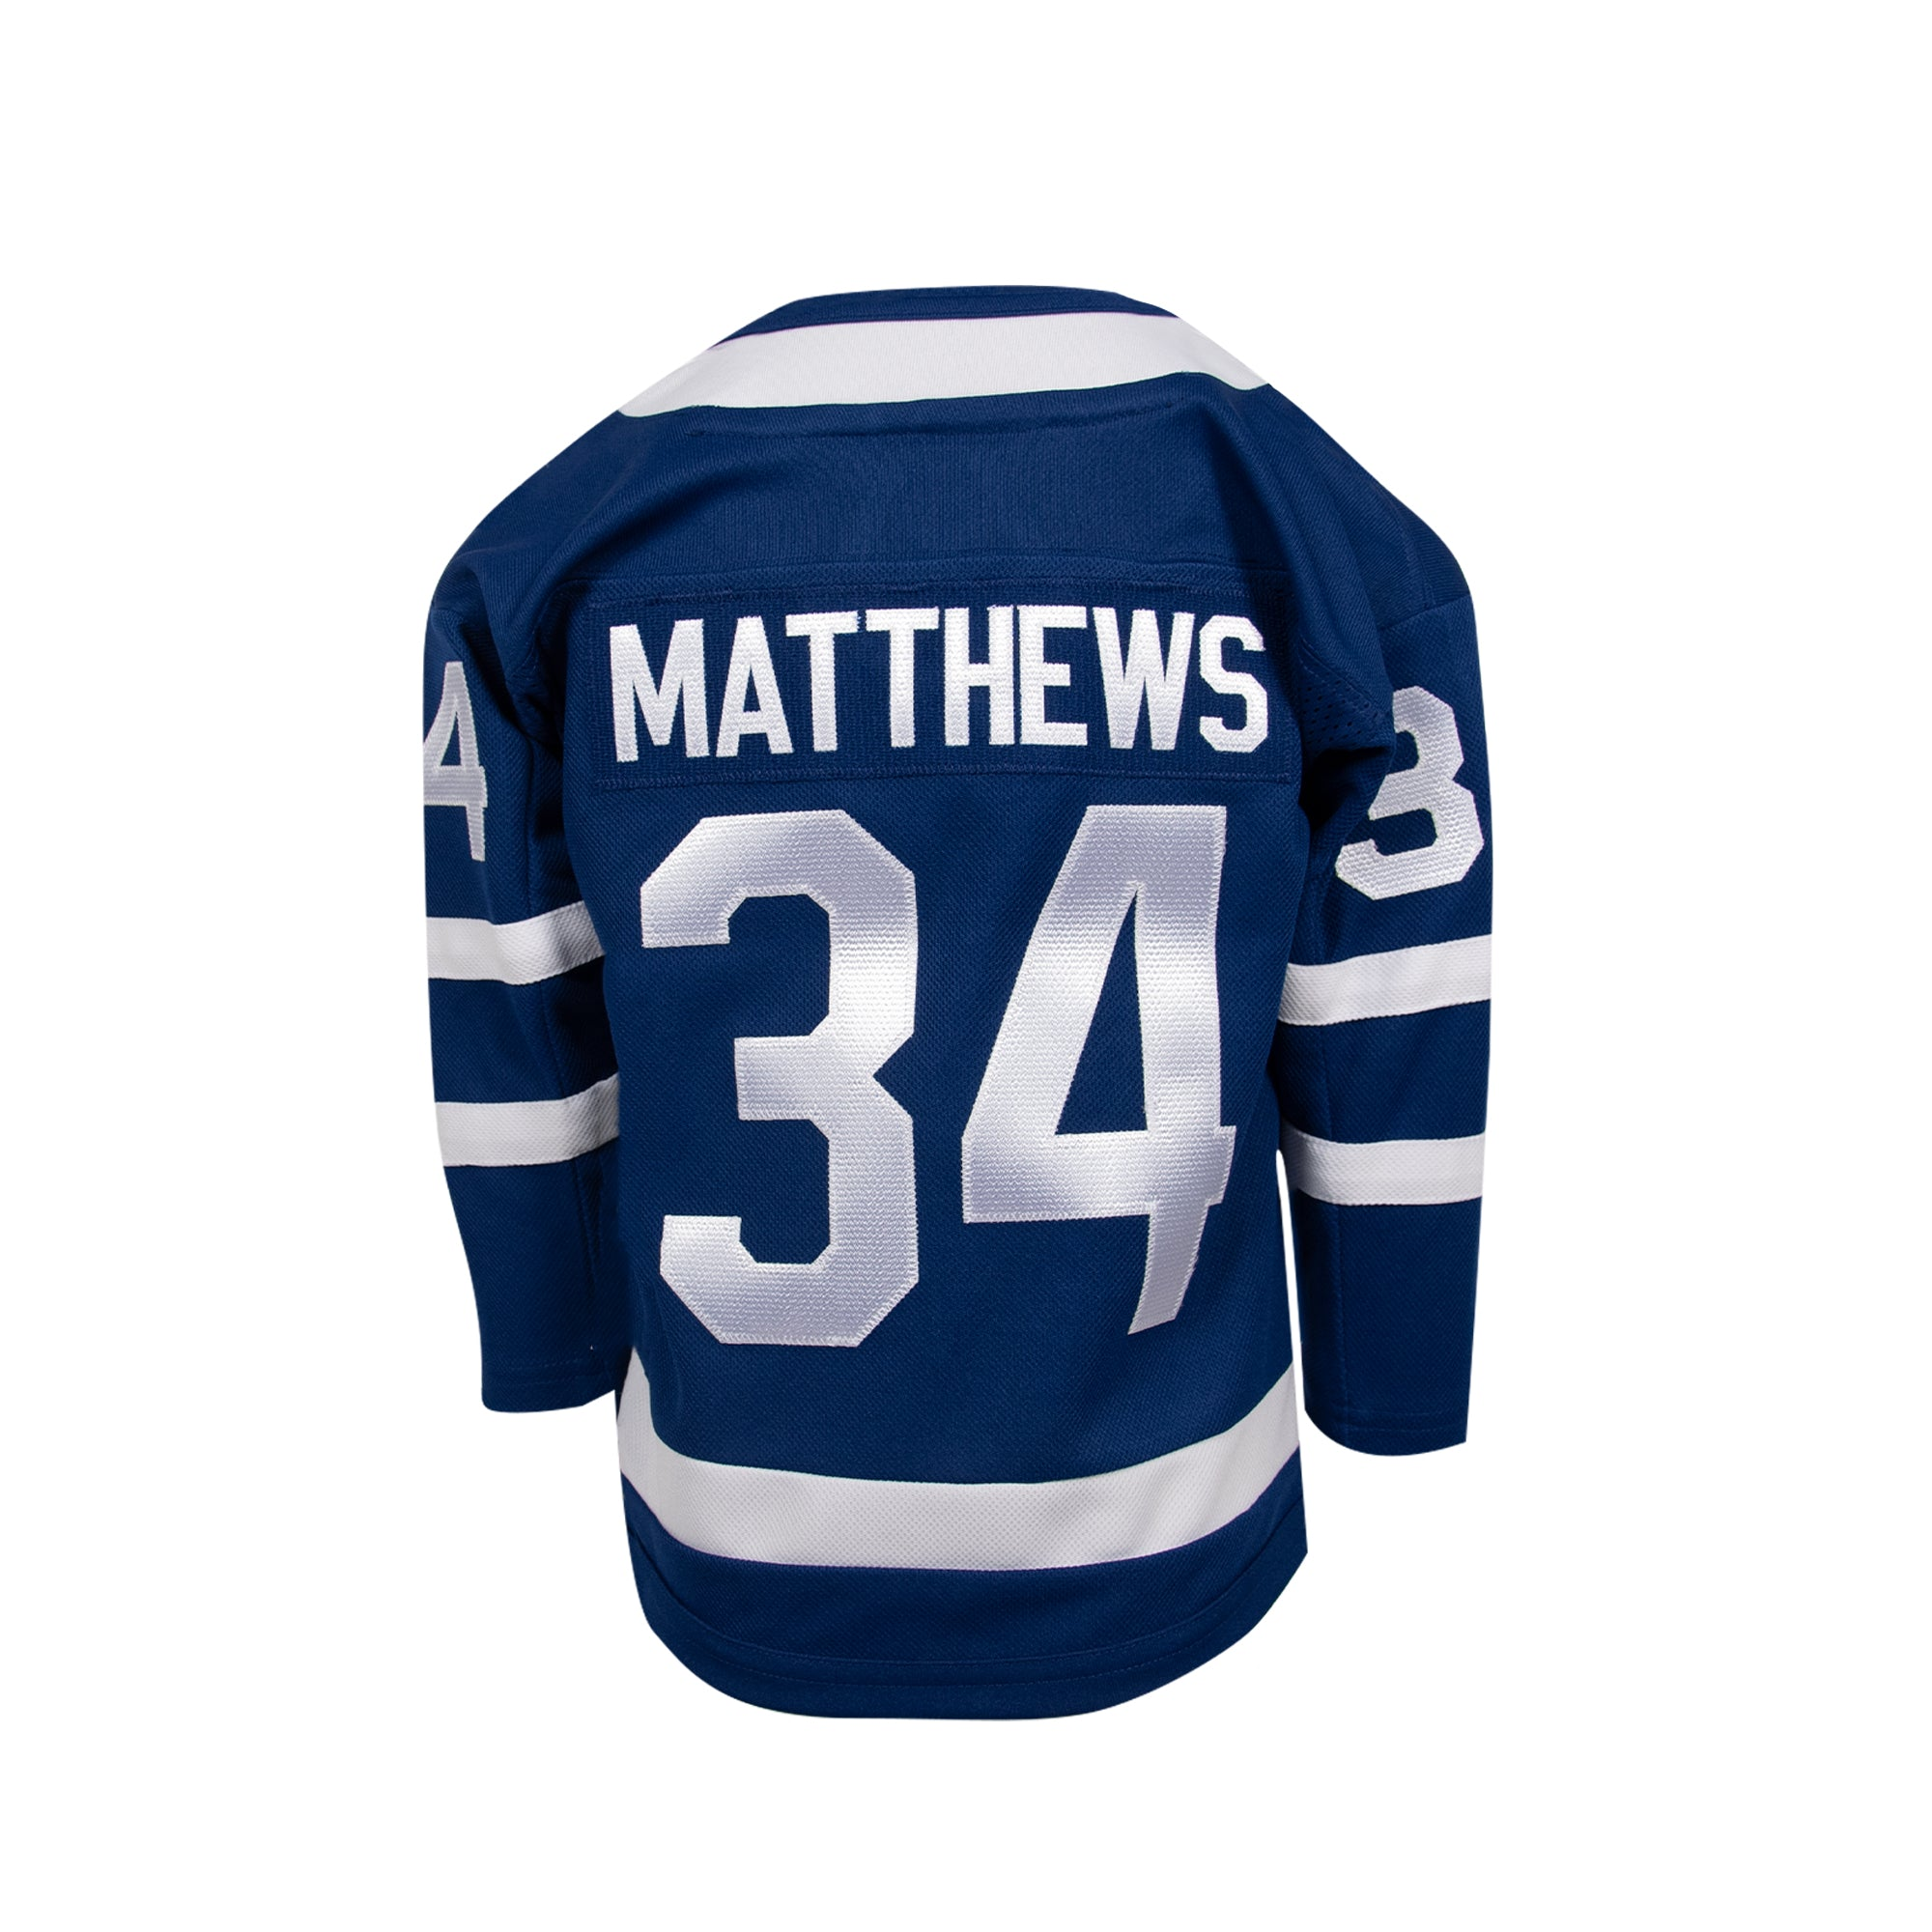 Maple Leafs Kids Home Jersey - Matthews